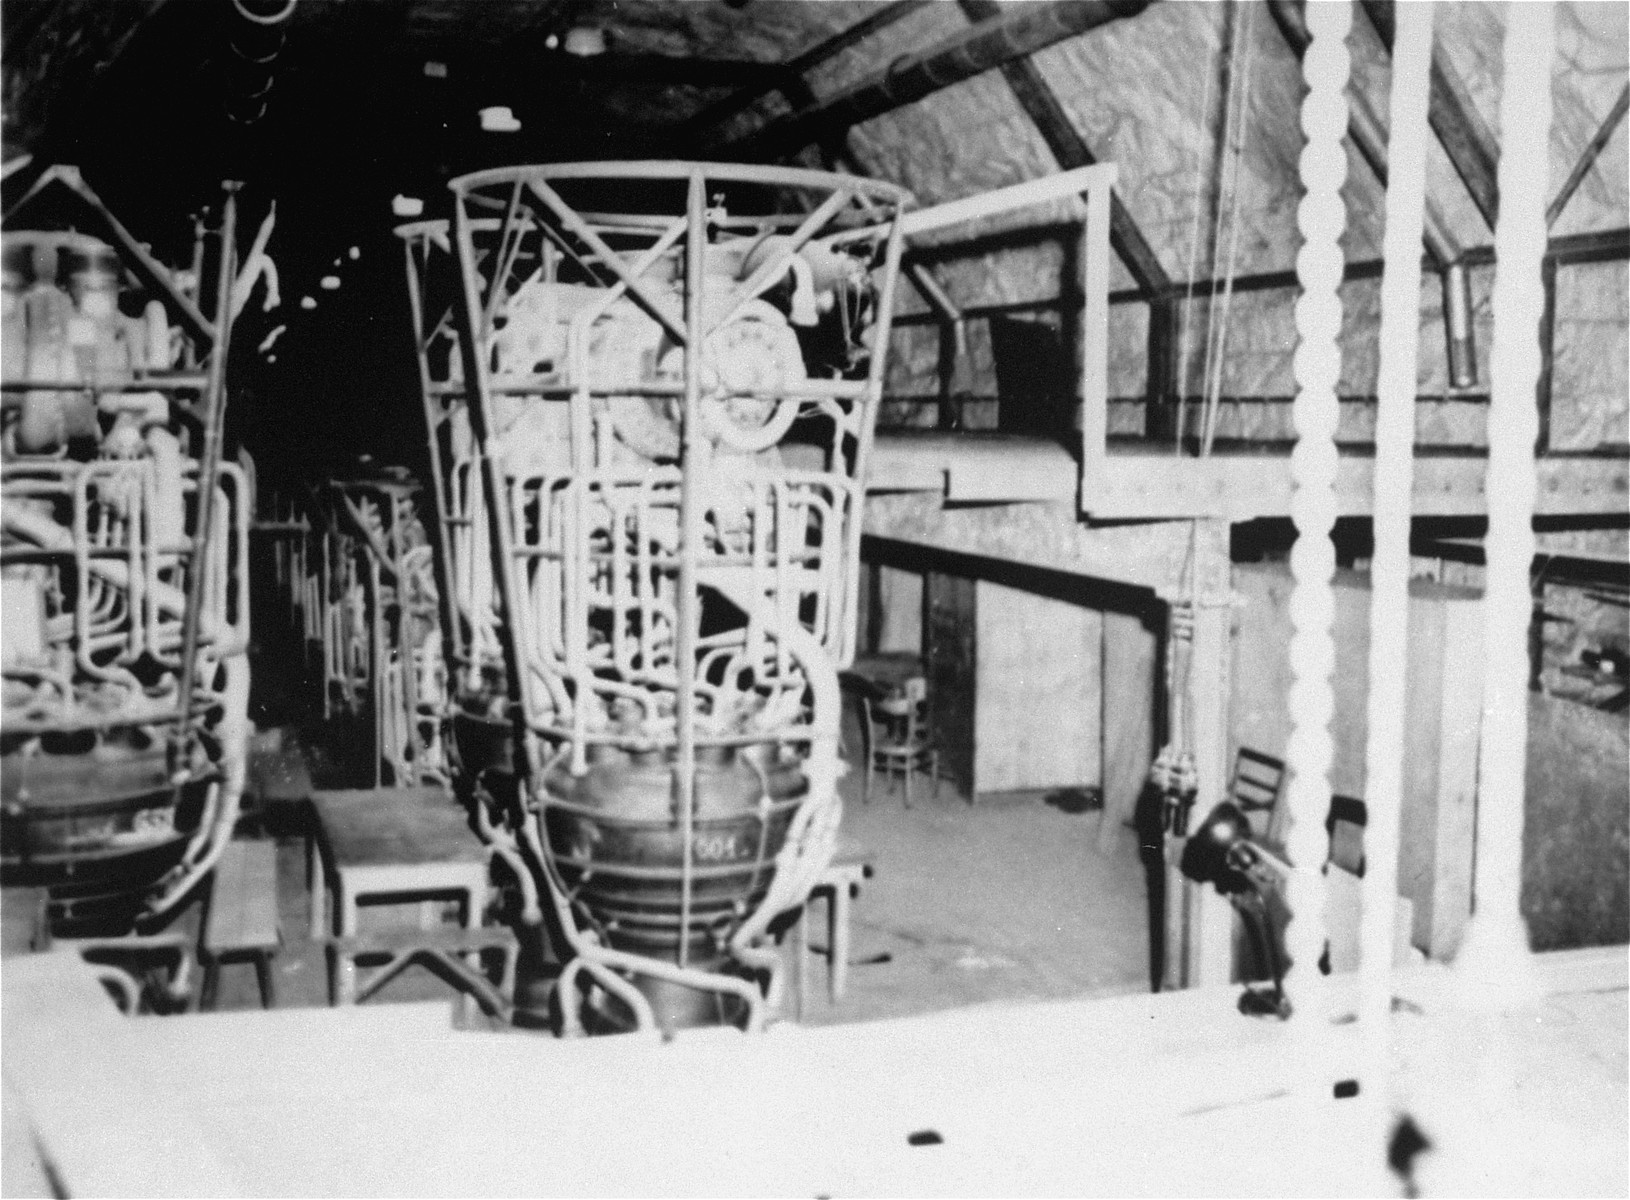 The propulsion unit assembly section of the underground rocket factory at Dora-Mittelbau.